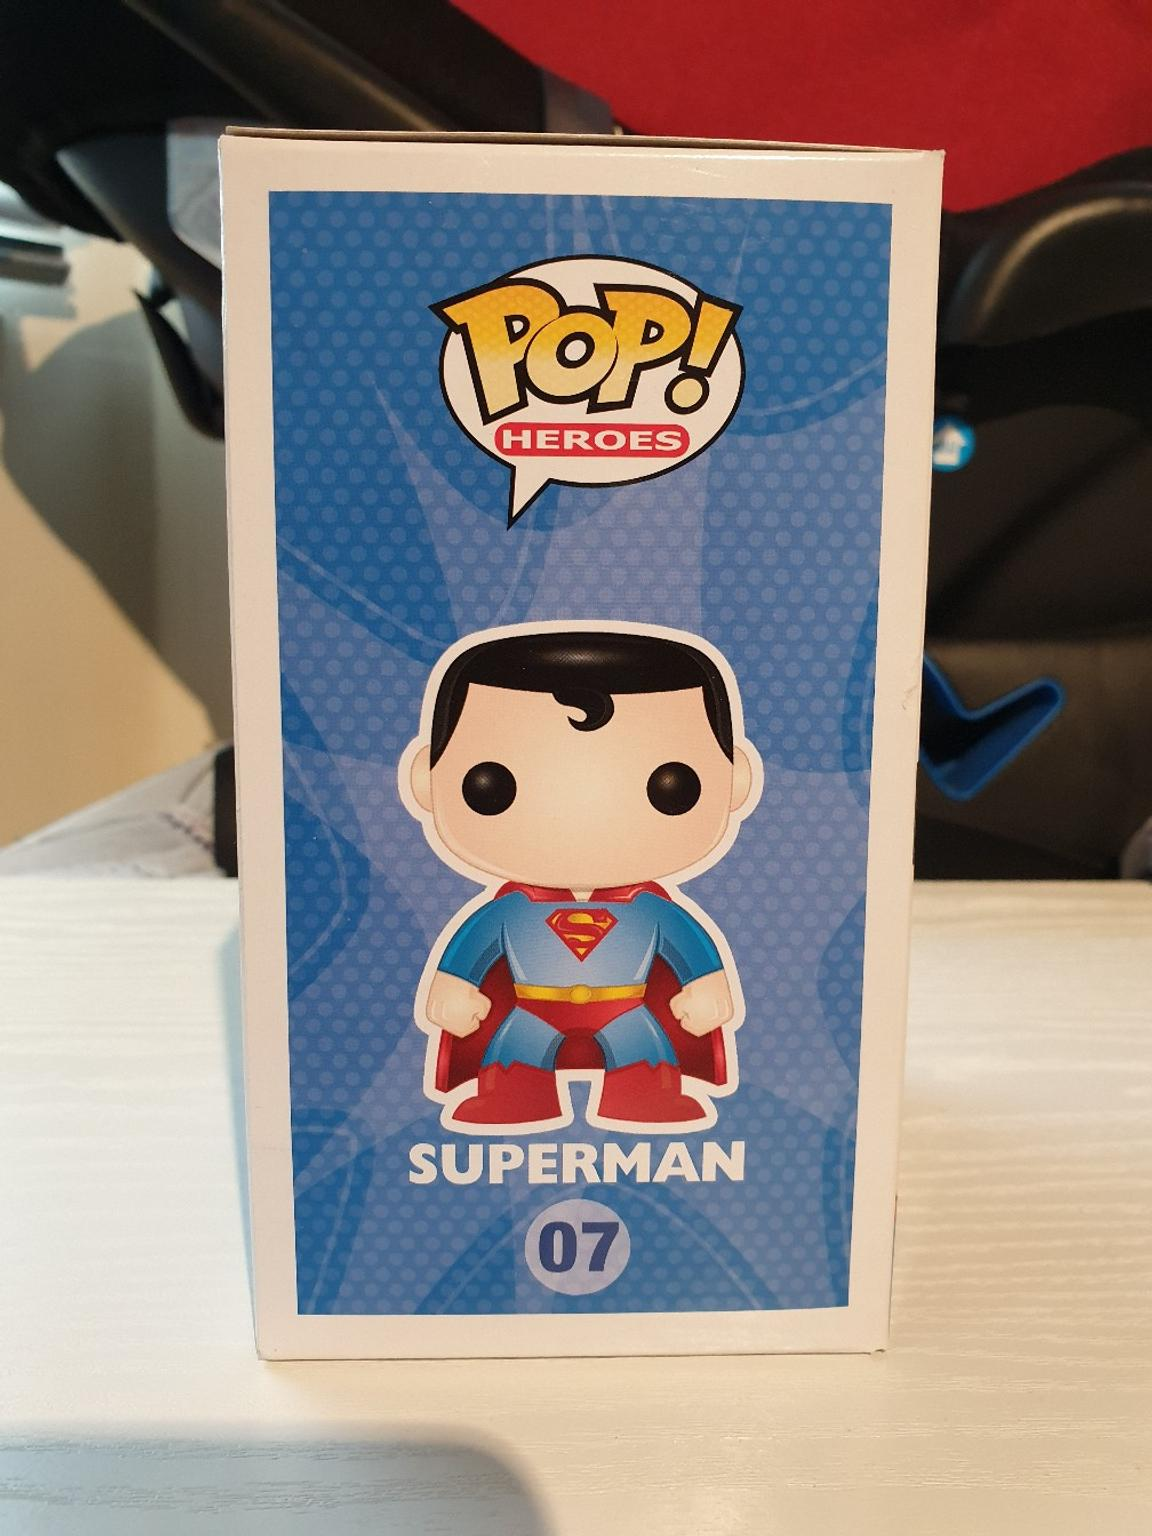 VINYL STICKER INSPIRED BY FUNKO POP SUPERMAN 07 FROM DC UNIVERSE